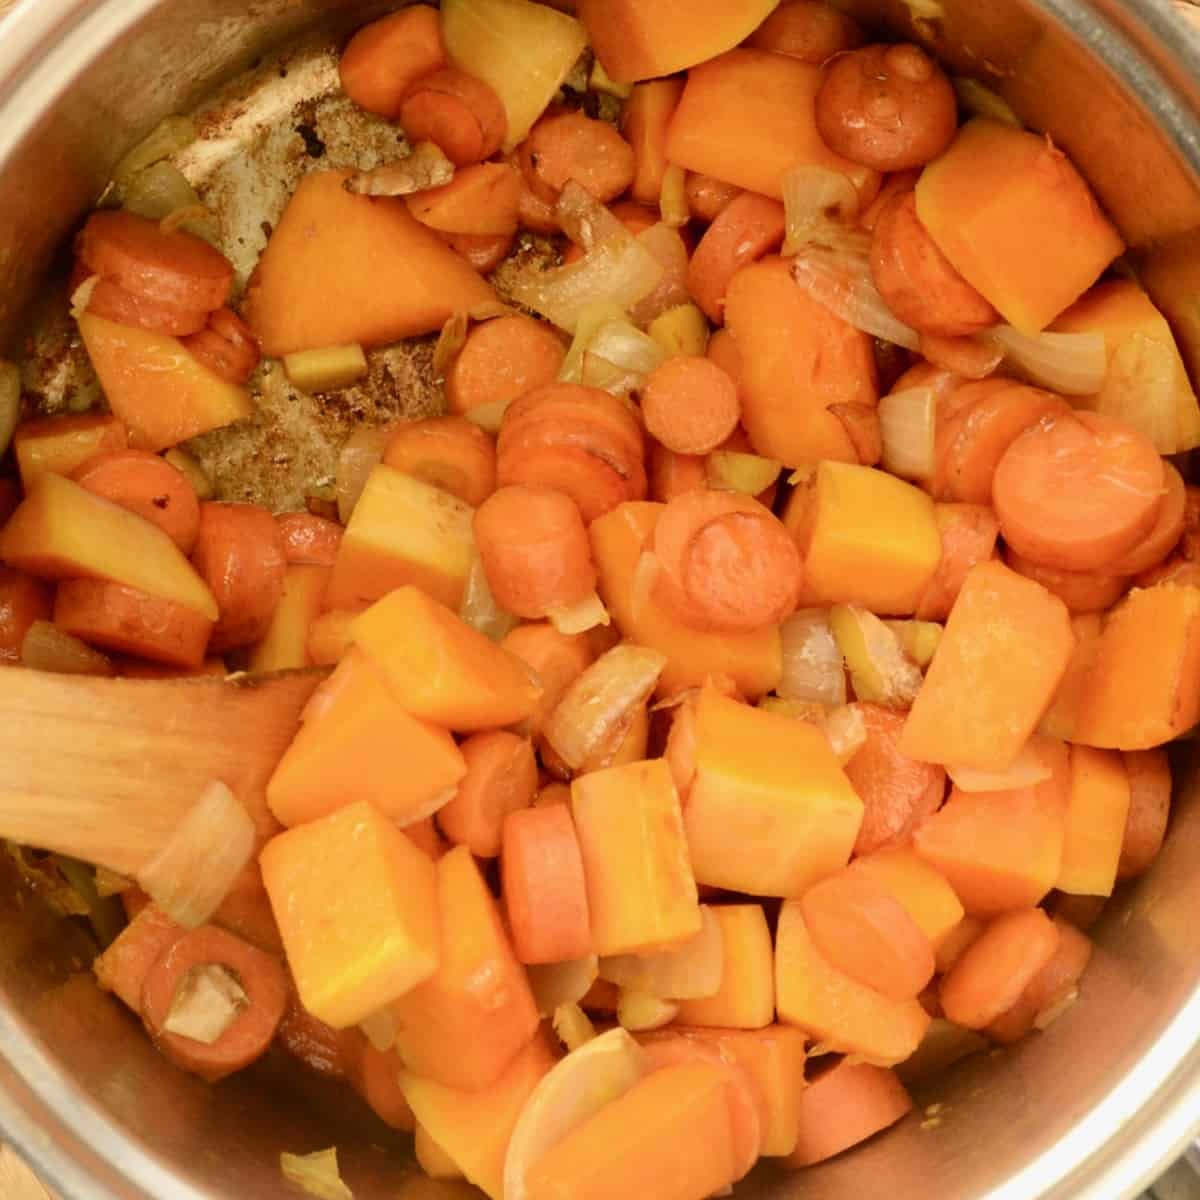 Chunks of squash, carrots, onion and ginger browning in a saucepan.